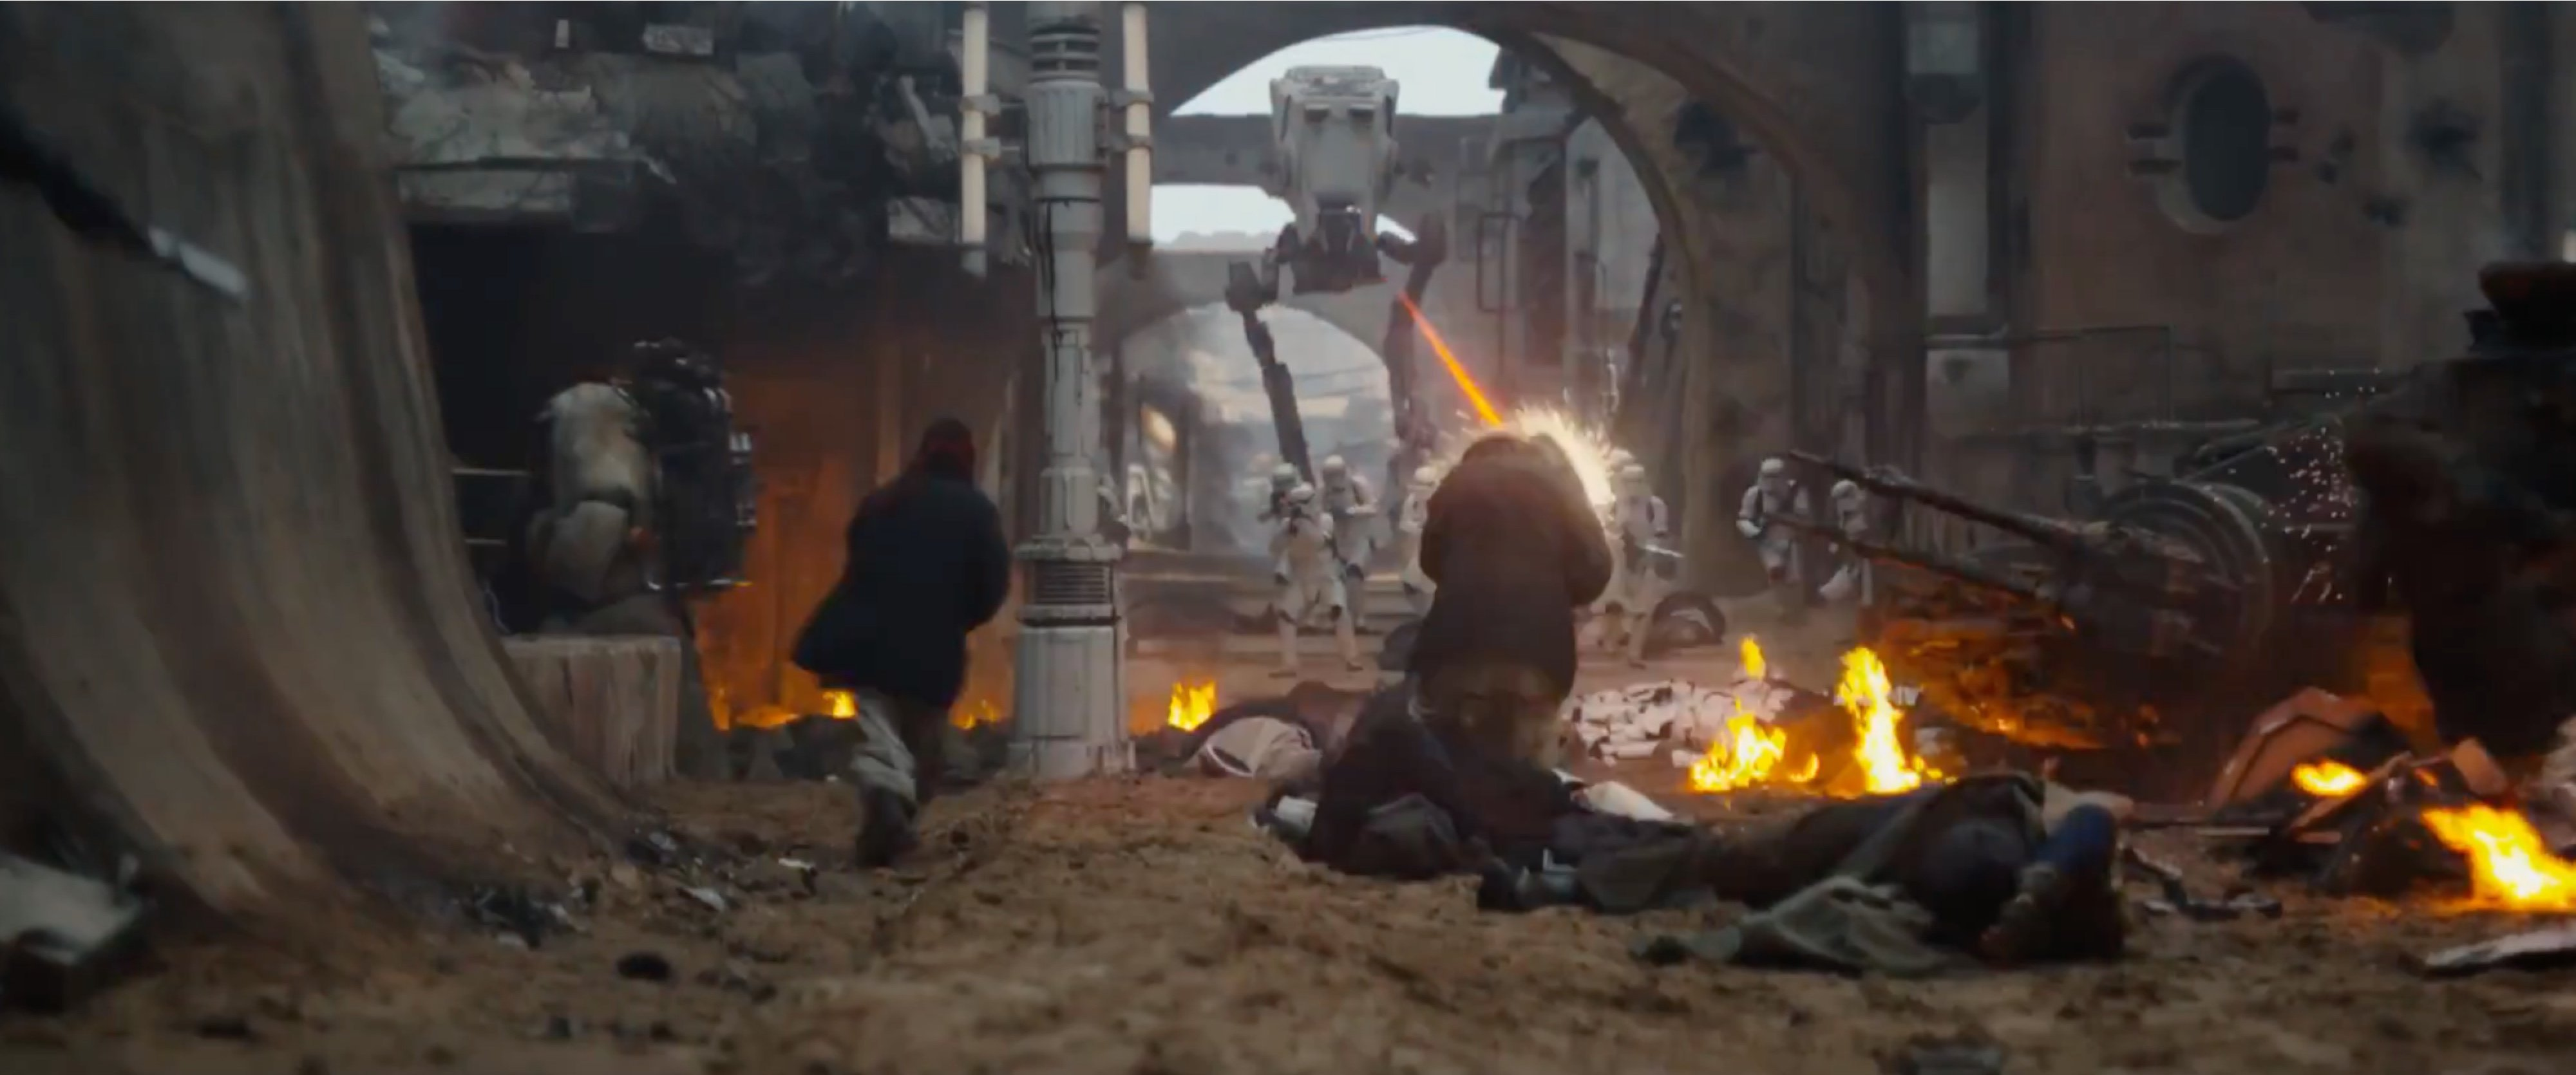 Image de la bataille de Jedha de Star Wars Rogue One